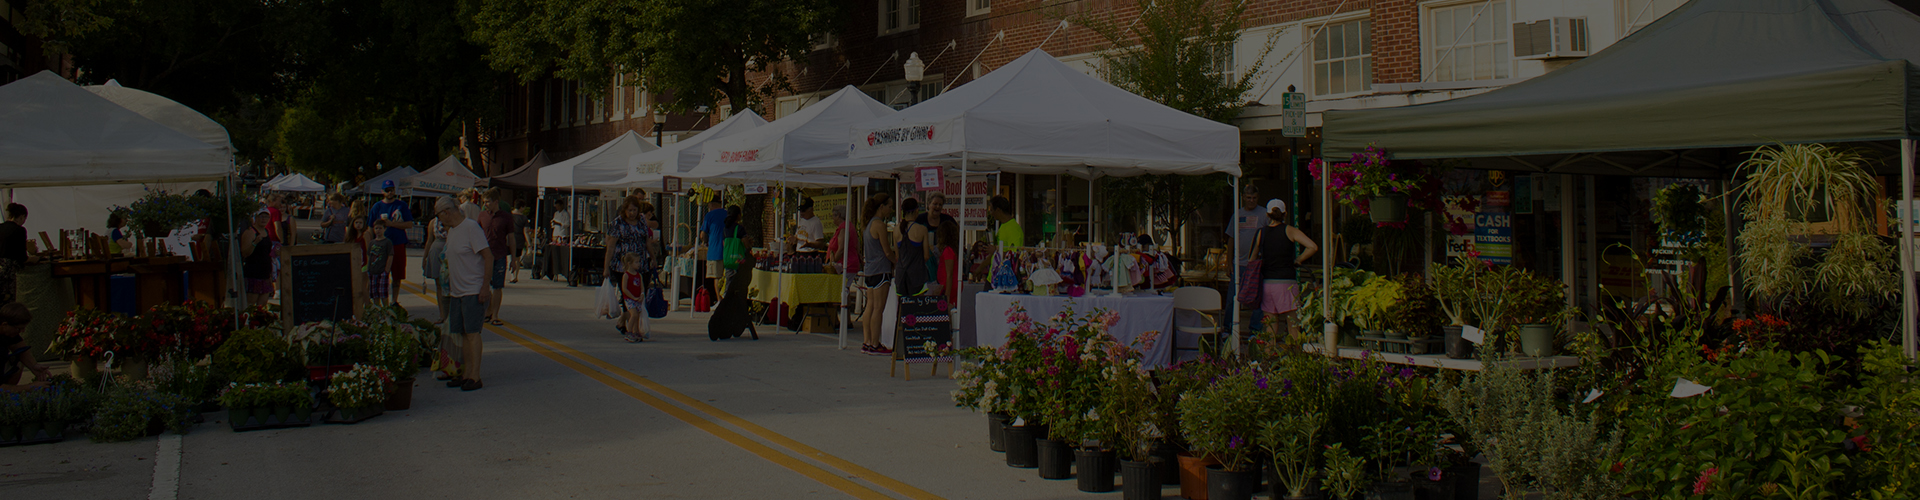 Downtown<br>Lakeland Events